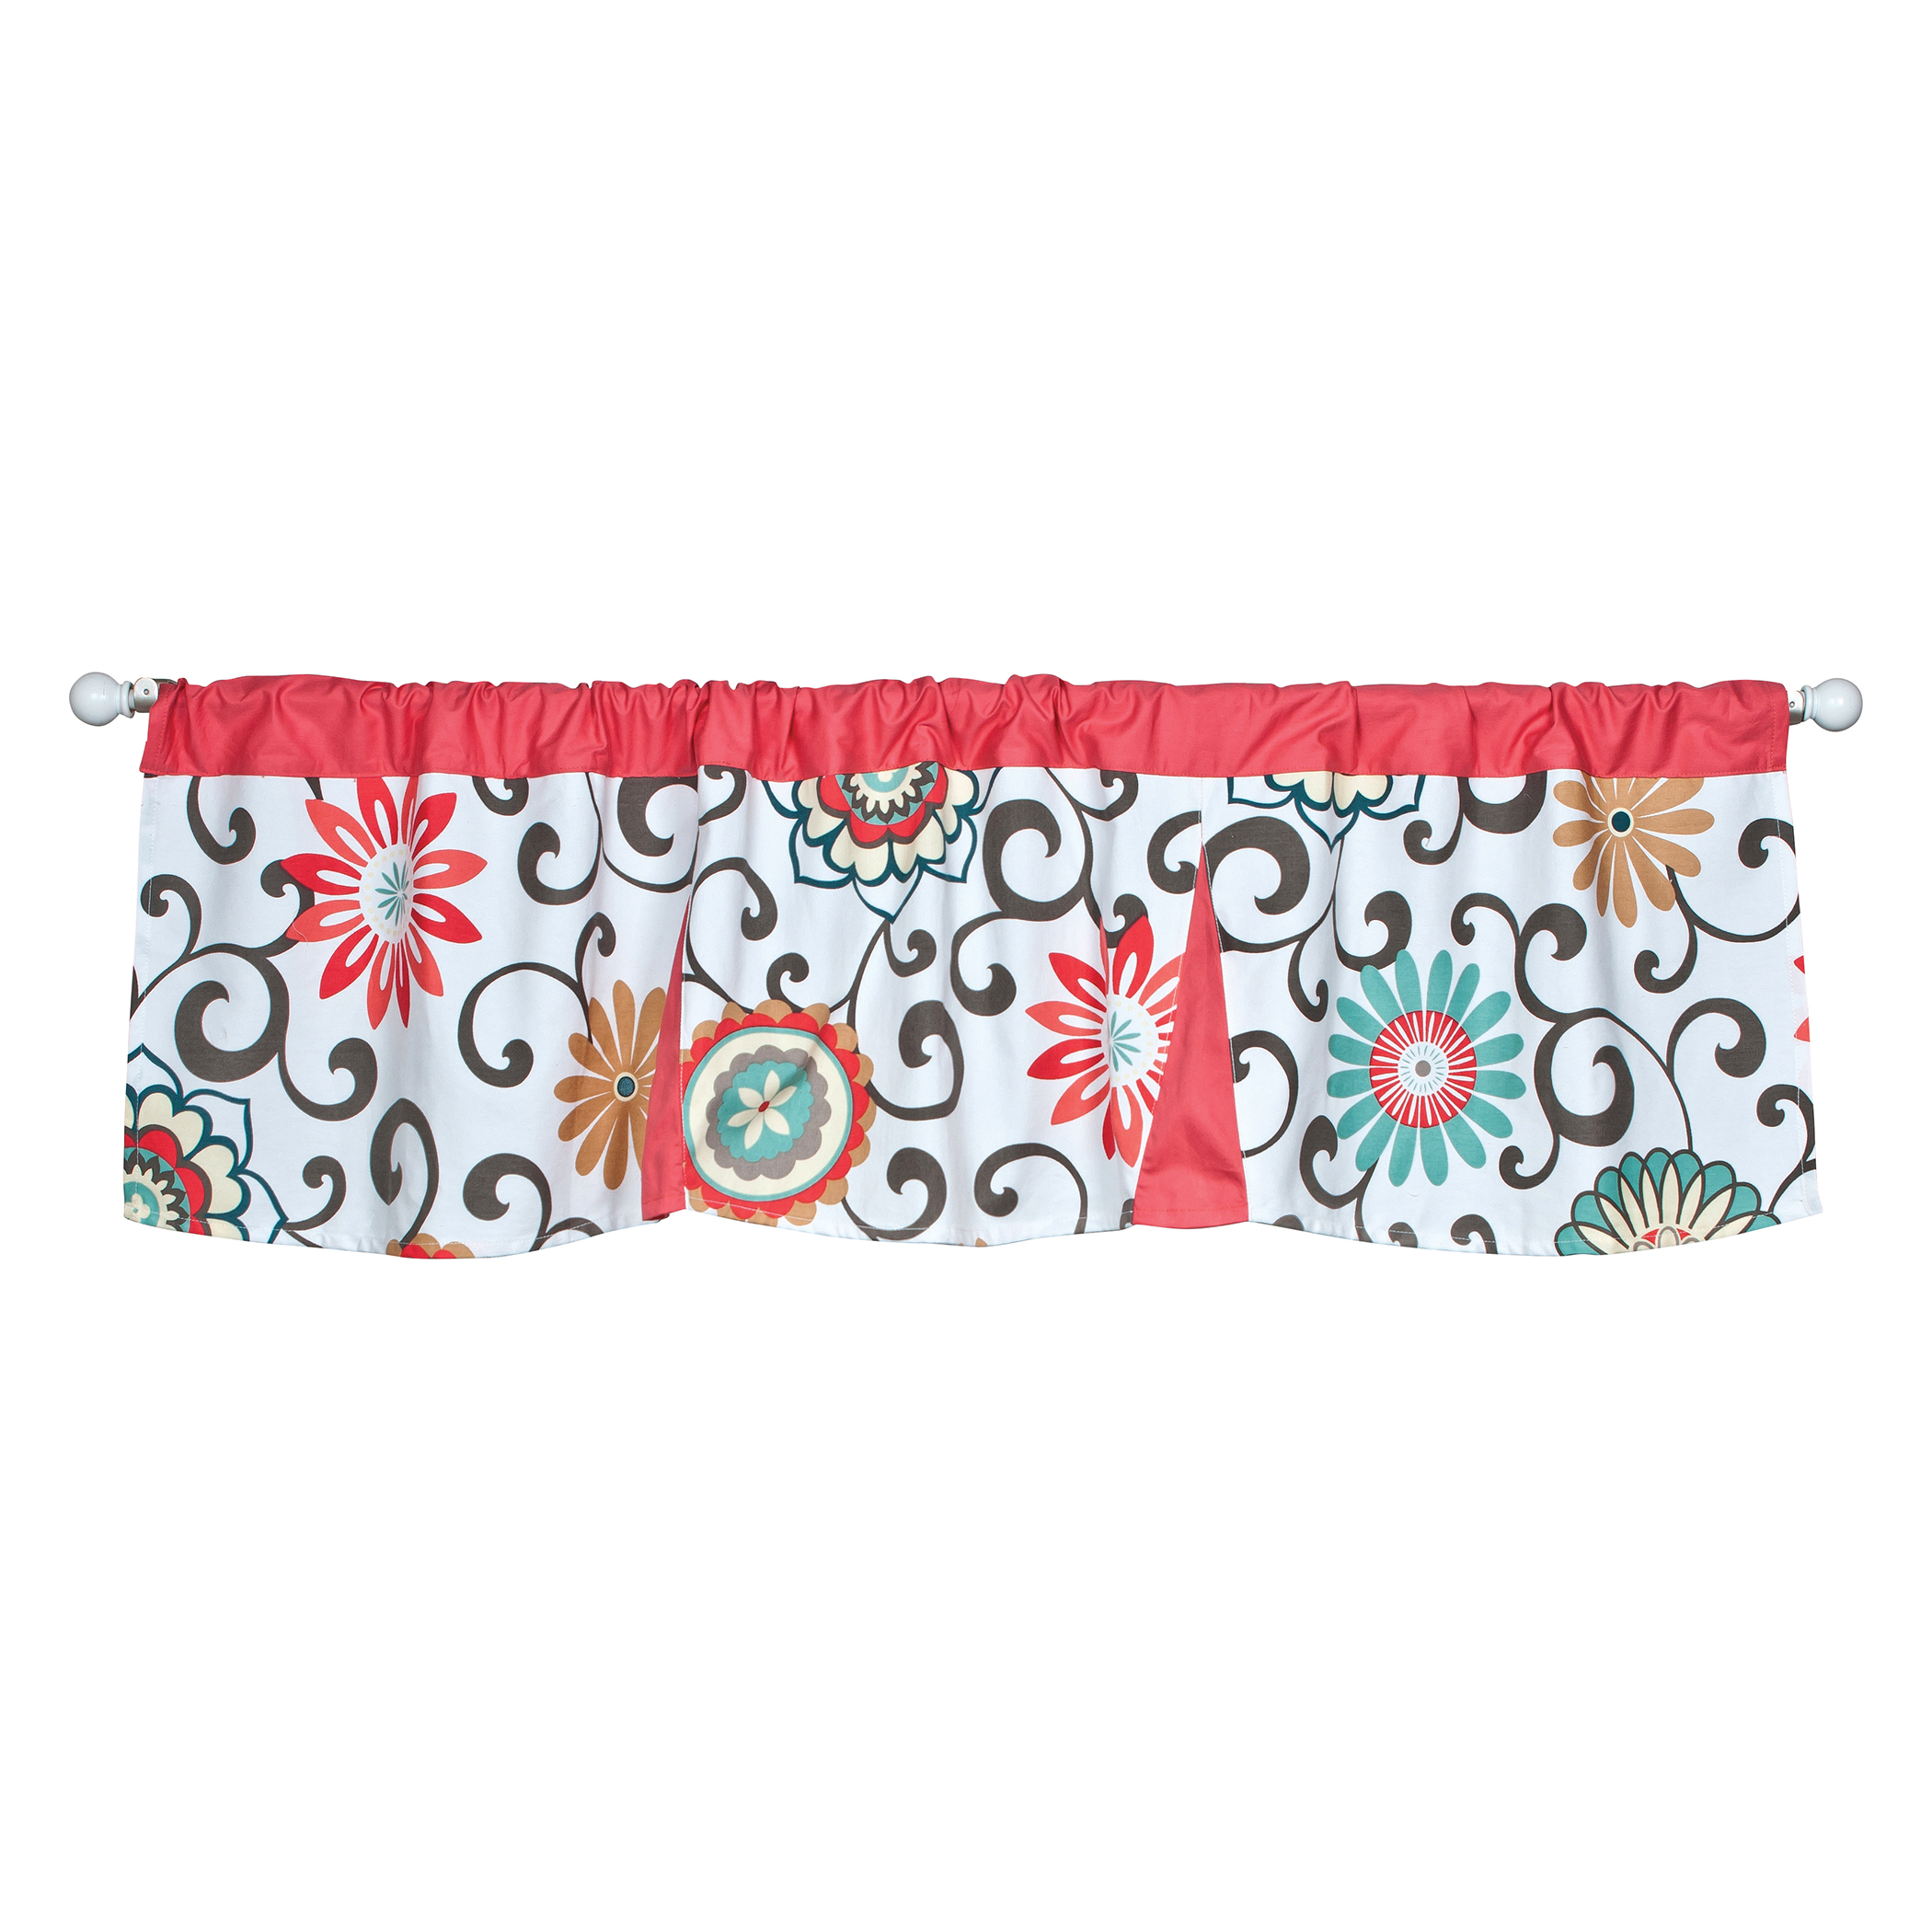 Waverly Pom Pom Play Floral Window Valance by Waverly